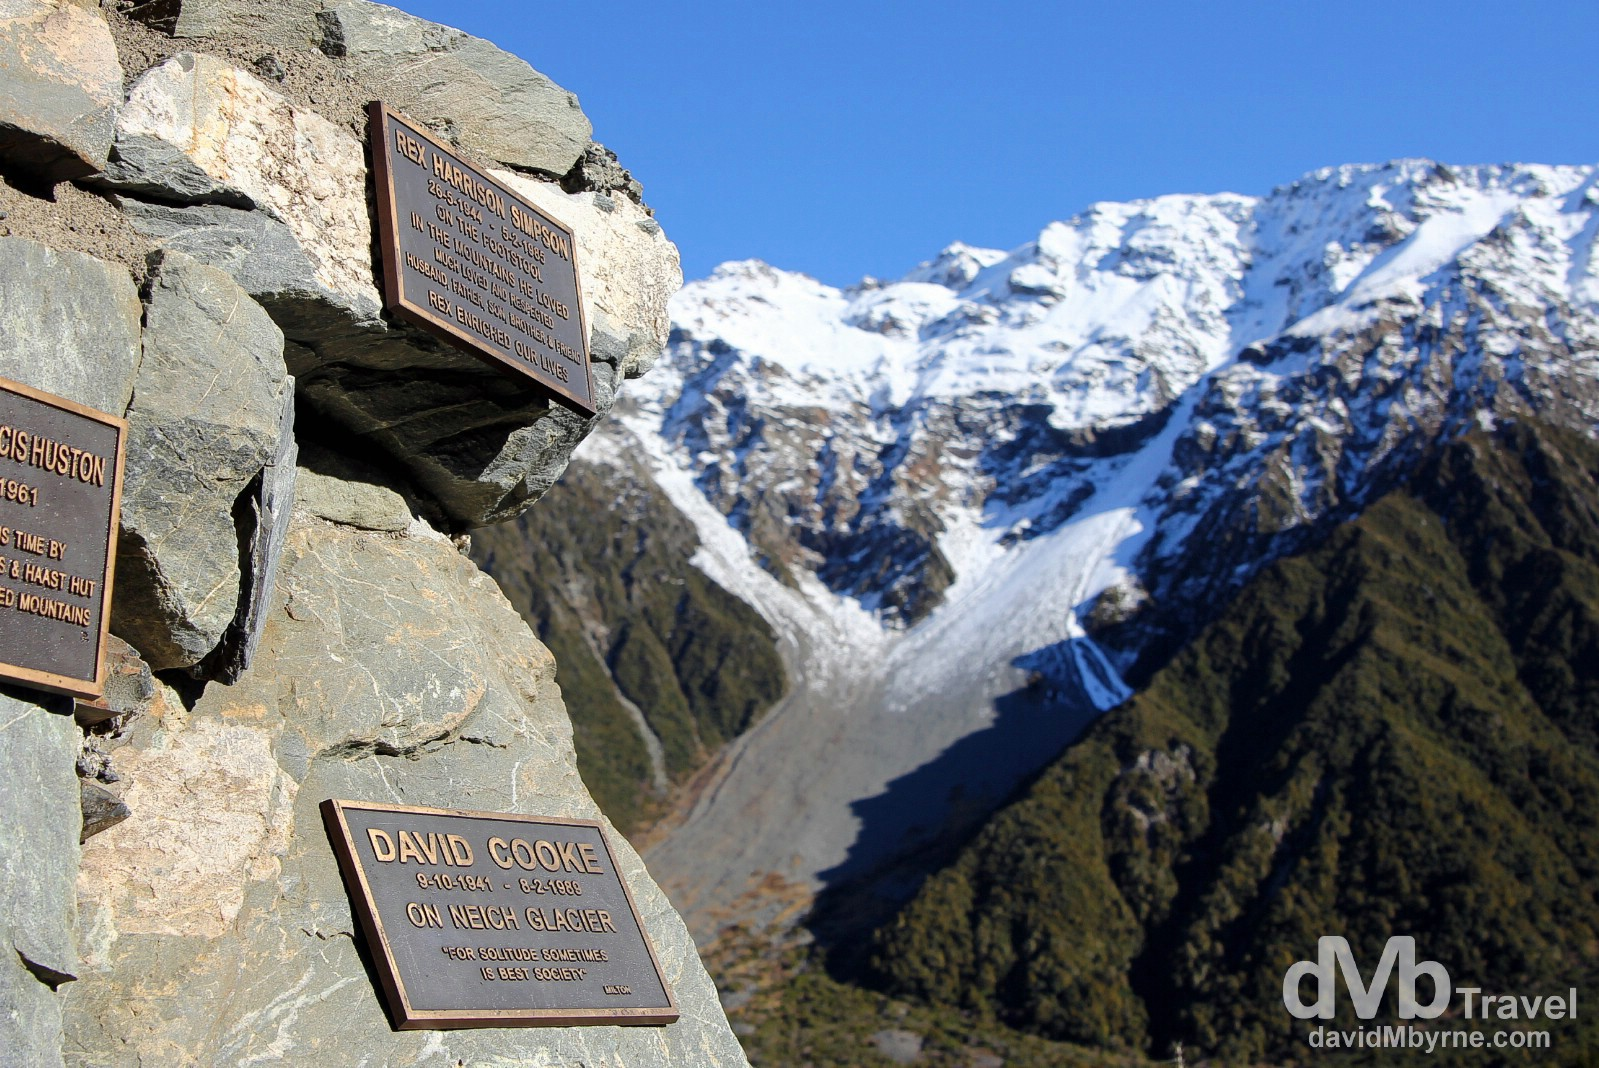 Plaques on the Alpine Monument at the entrance to the Hooker Valley, Mount Cook National Park, South Island, New Zealand. May 31st 2012.